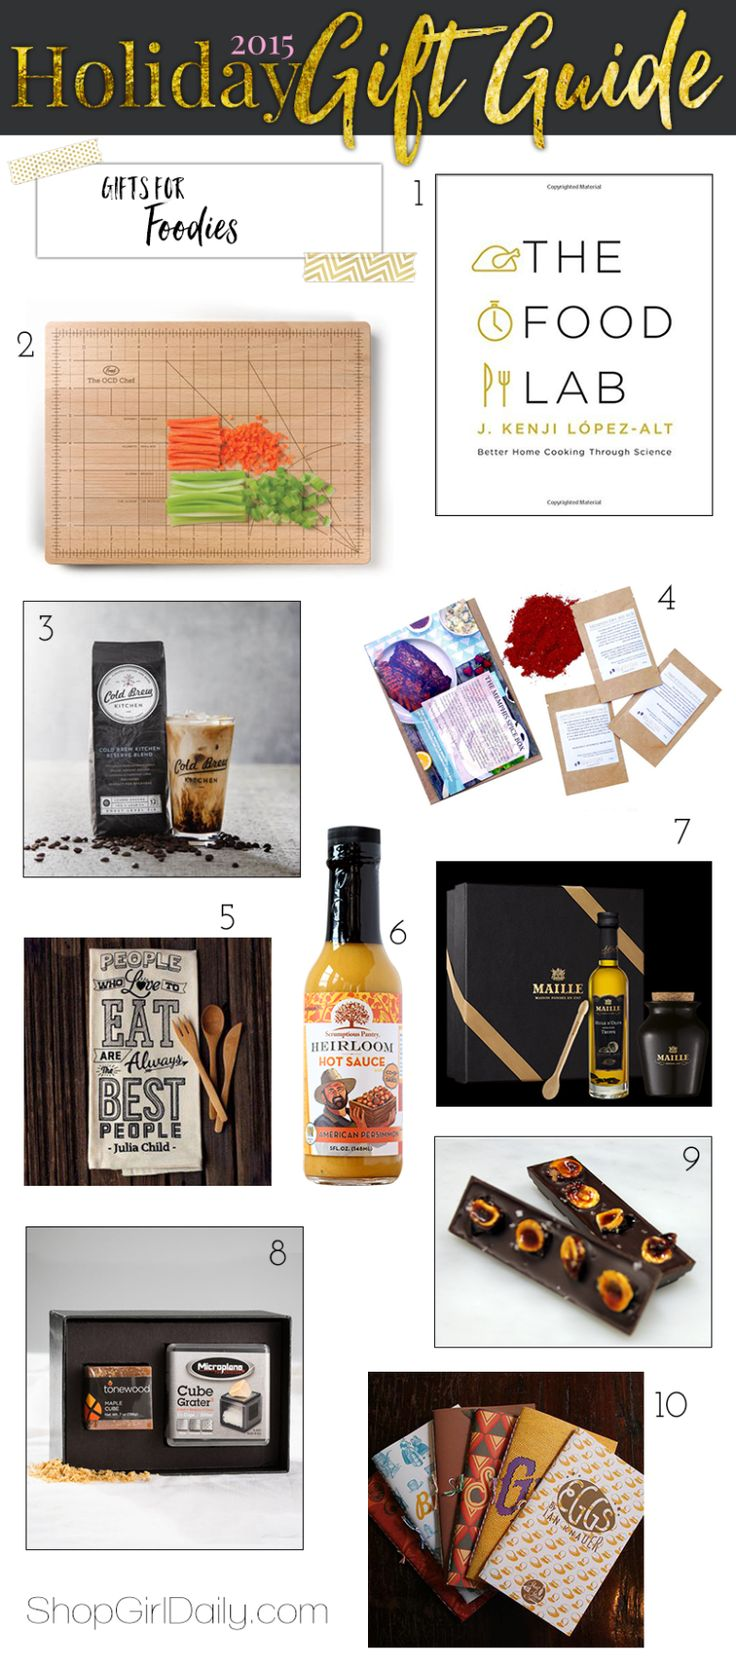 2015 Holiday Gift Guide: Gift Ideas for Foodies | ShopGirlDaily.com